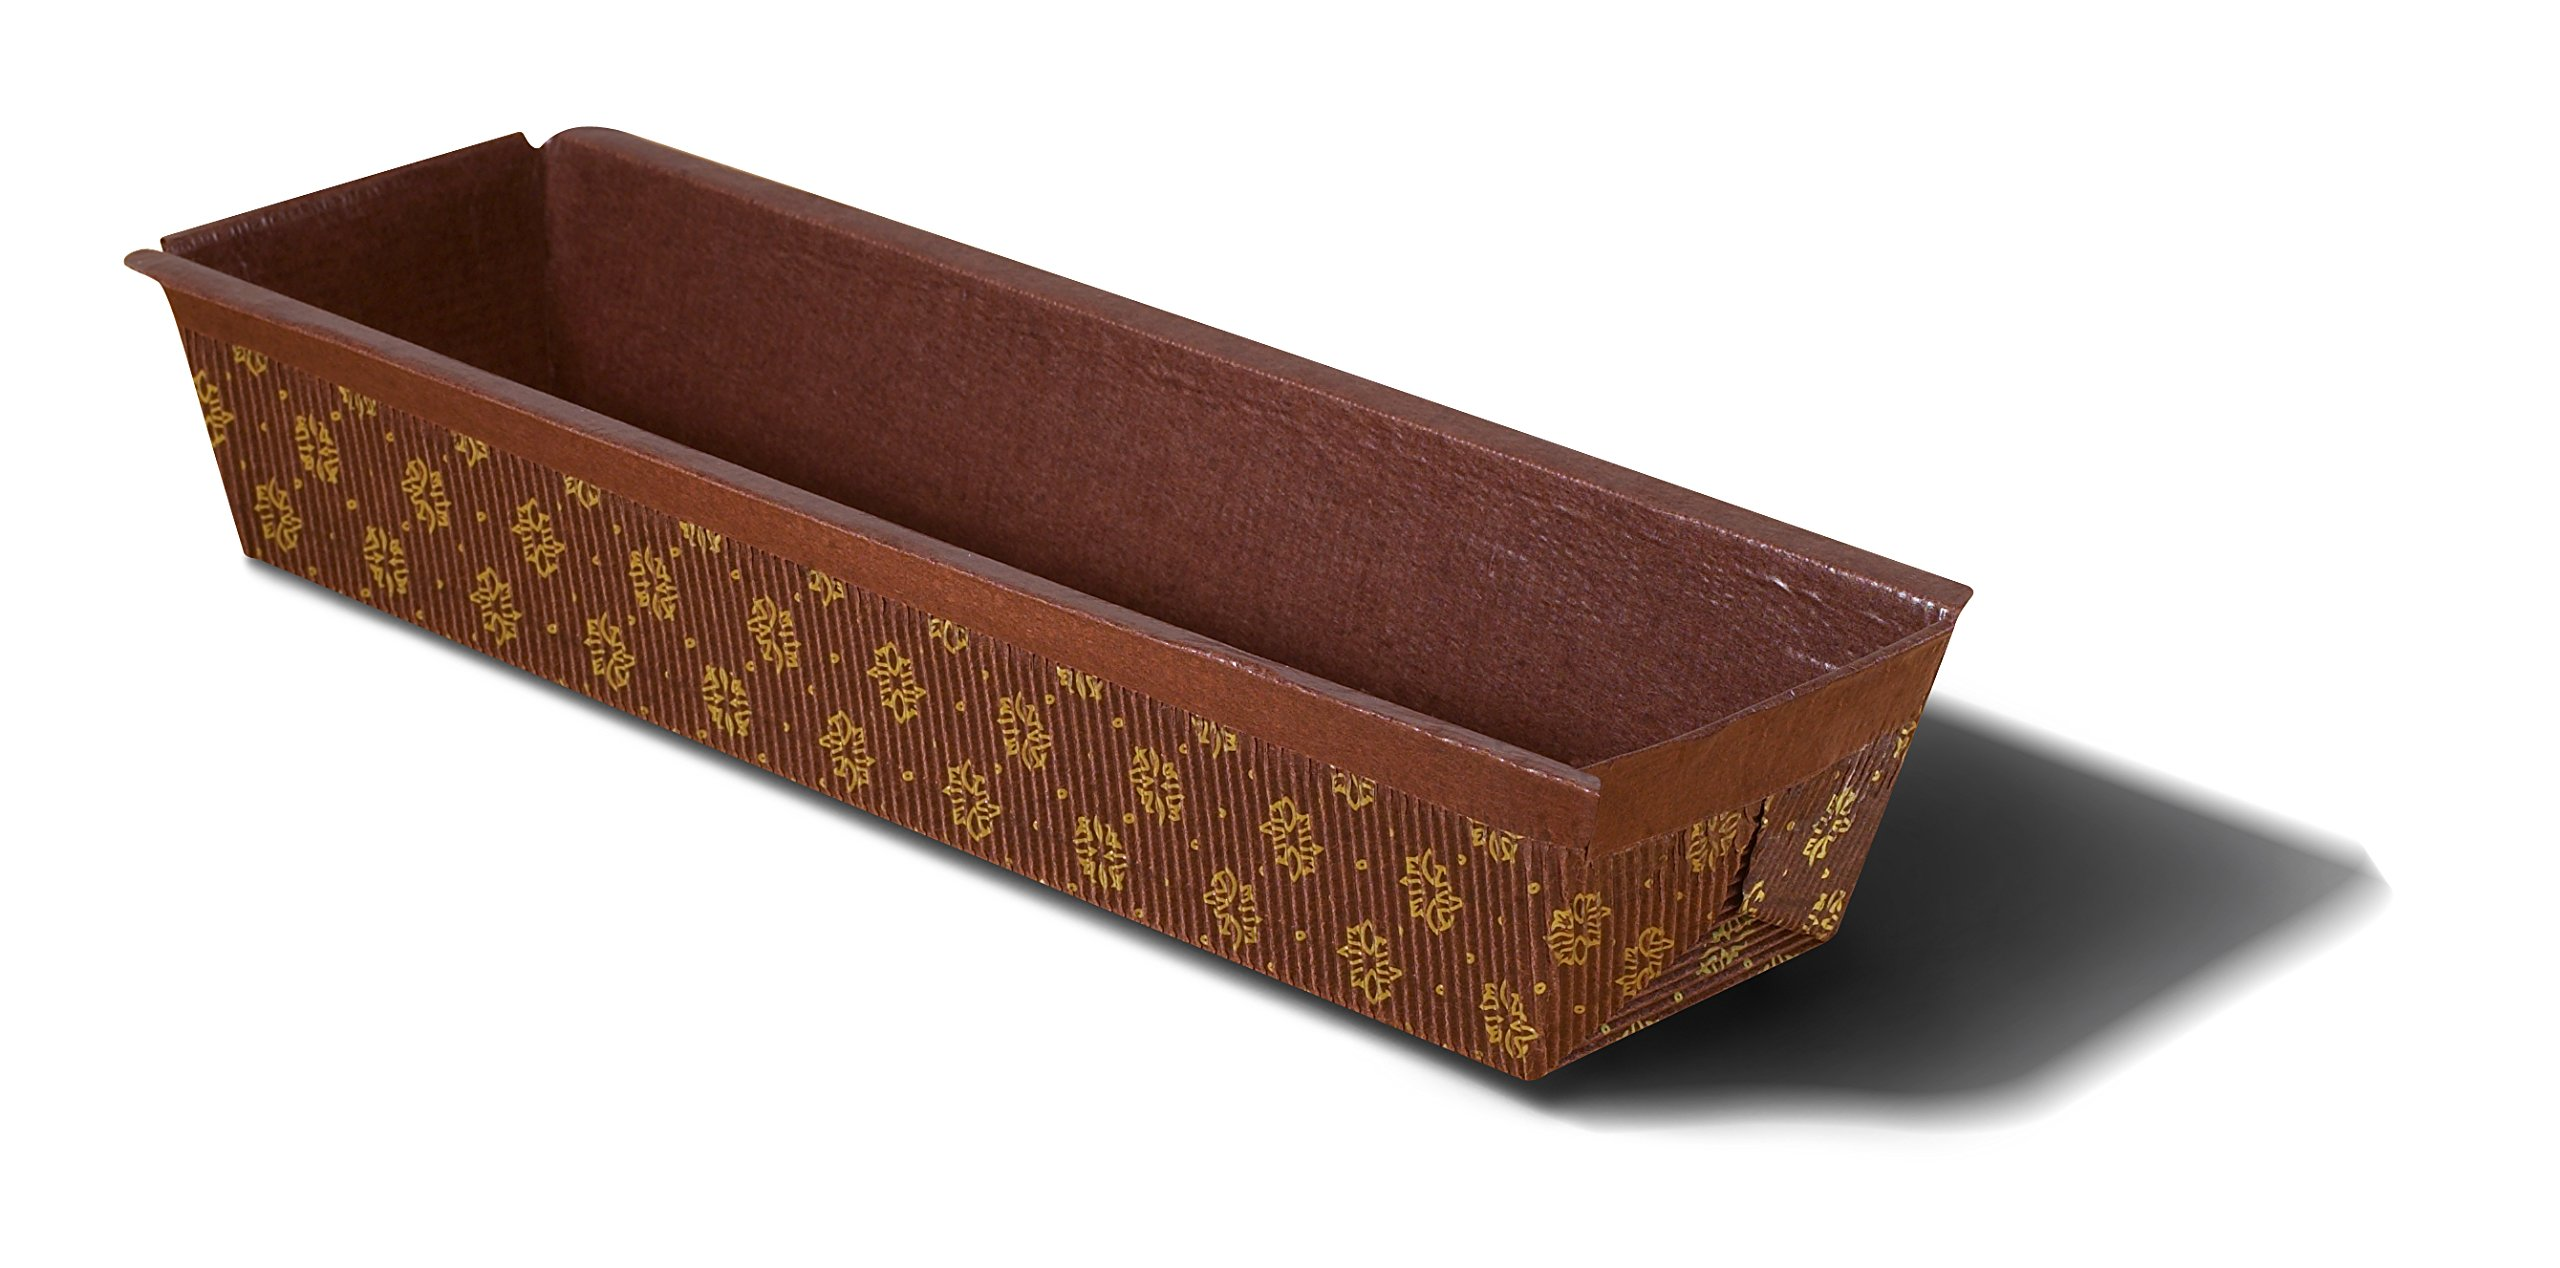 Premium Paper Baking Loaf Pan, Nonstick, Disposable, for Chocolate Cake, Banana Bread, Set of 12 - By Ecobake